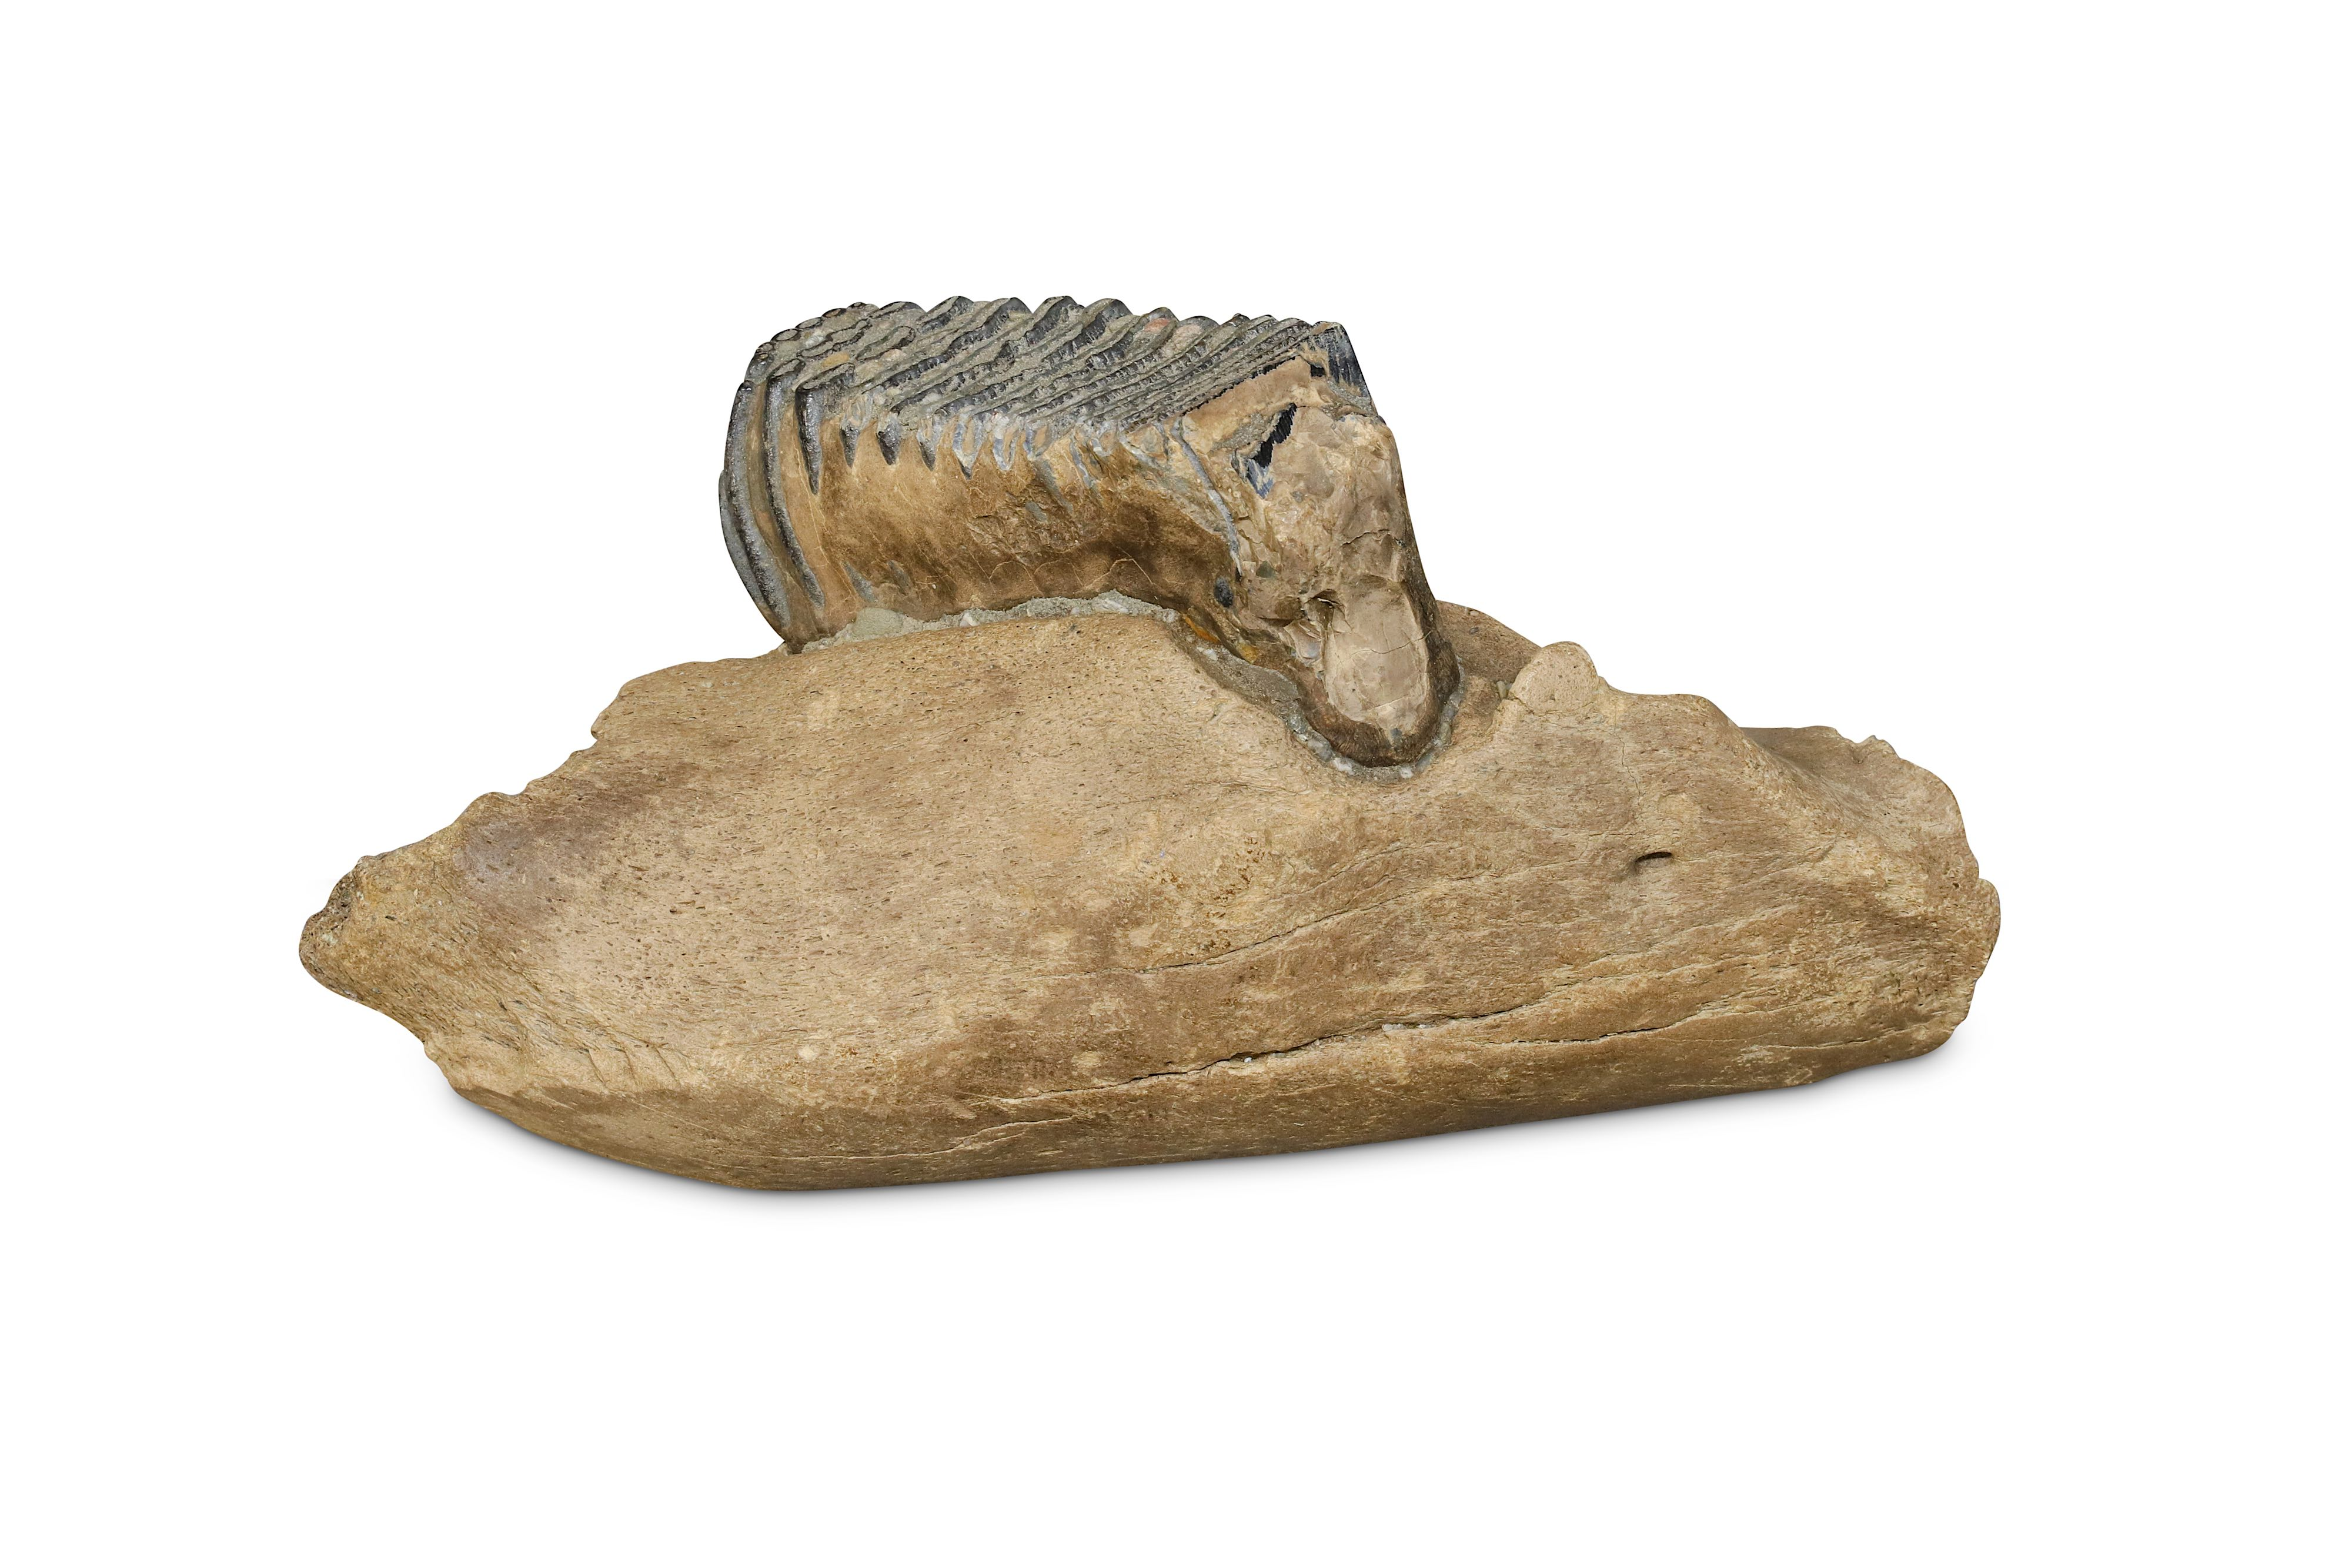 WOOLLY MAMMOTH (MAMMUTHUS PRIMIGENIUS), A MOLAR LOWER JAW - Image 2 of 2